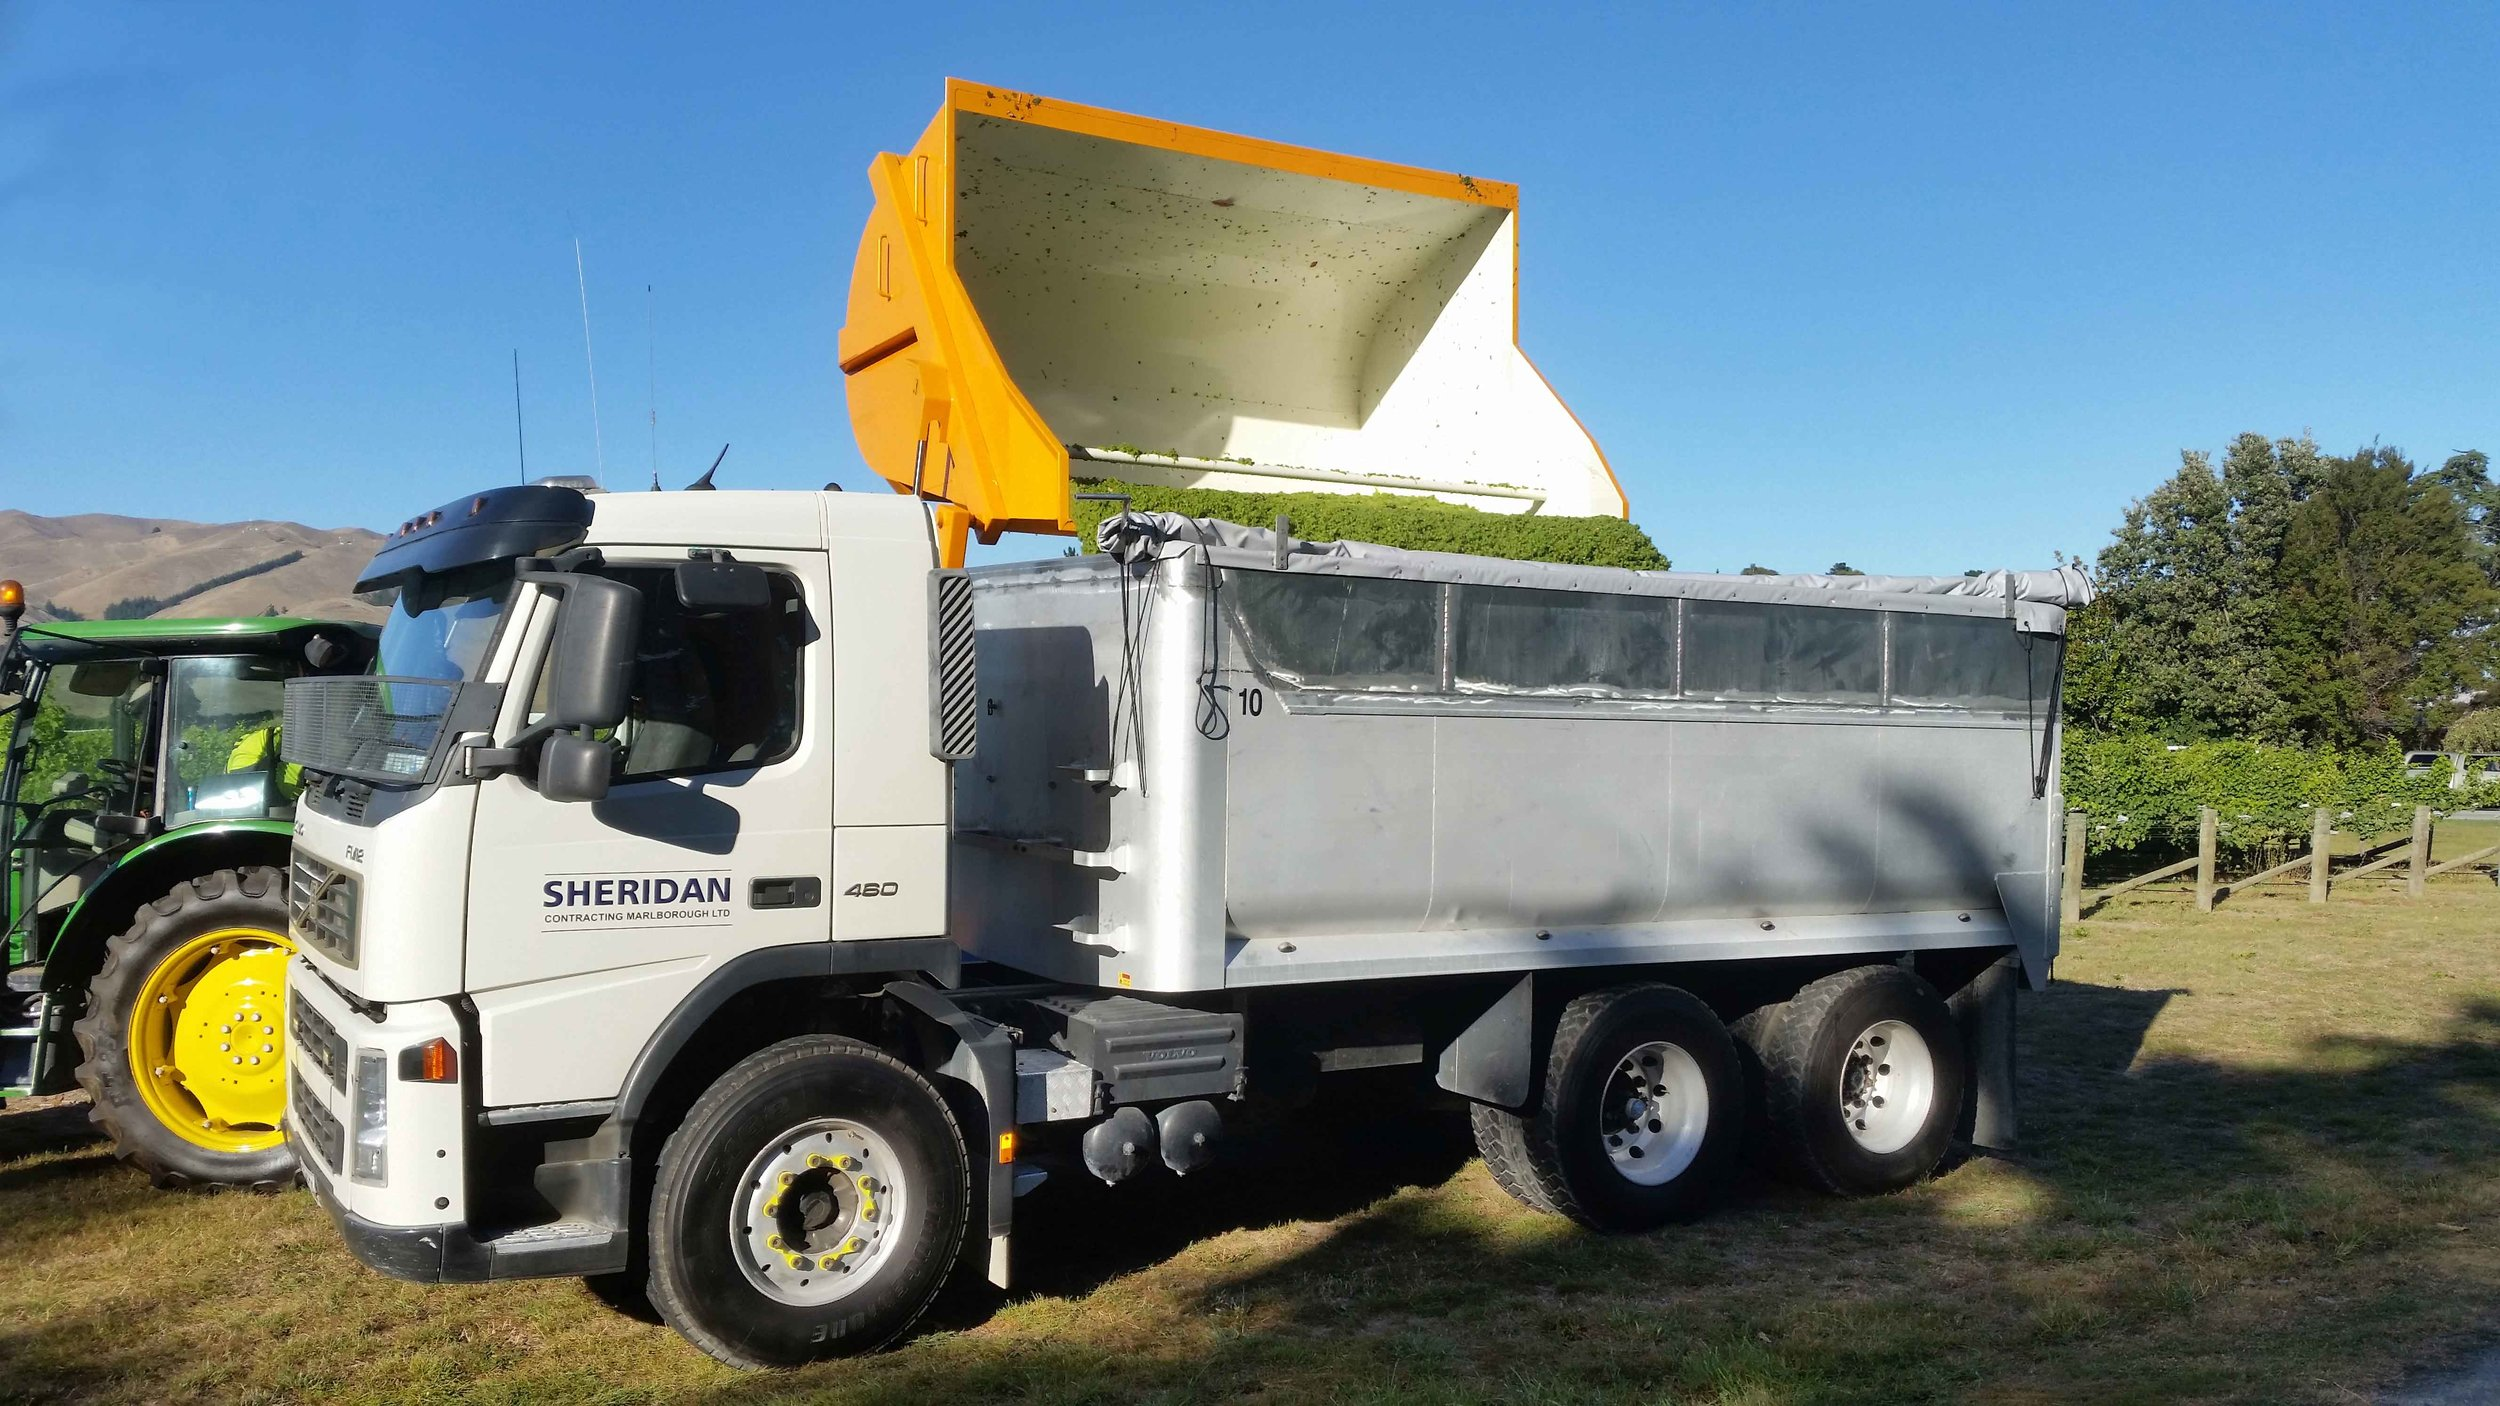 Timely Vineyard Harvesting - We offer total harvest coordination working 24 hours, 7 days using a modern well maintained fleet of Pellenc Harvesters remove crop at the optimum time and timely delivery of crop to wineries.